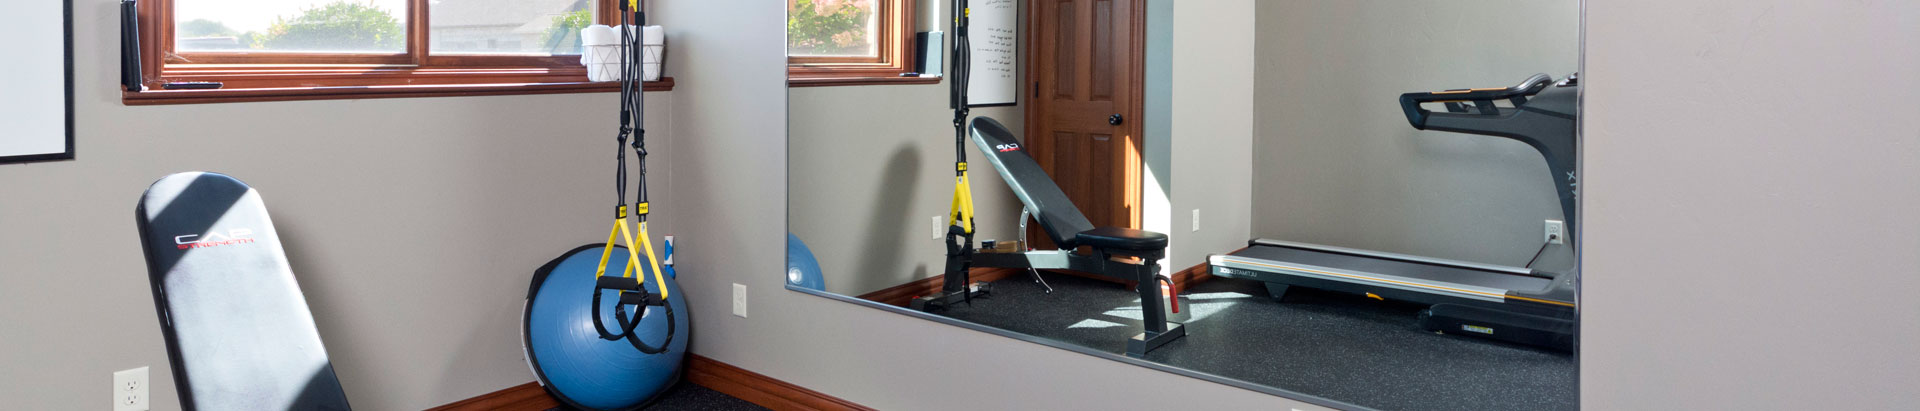 Exercise Room Basement Finishing and Remodeling in Green Bay, WI